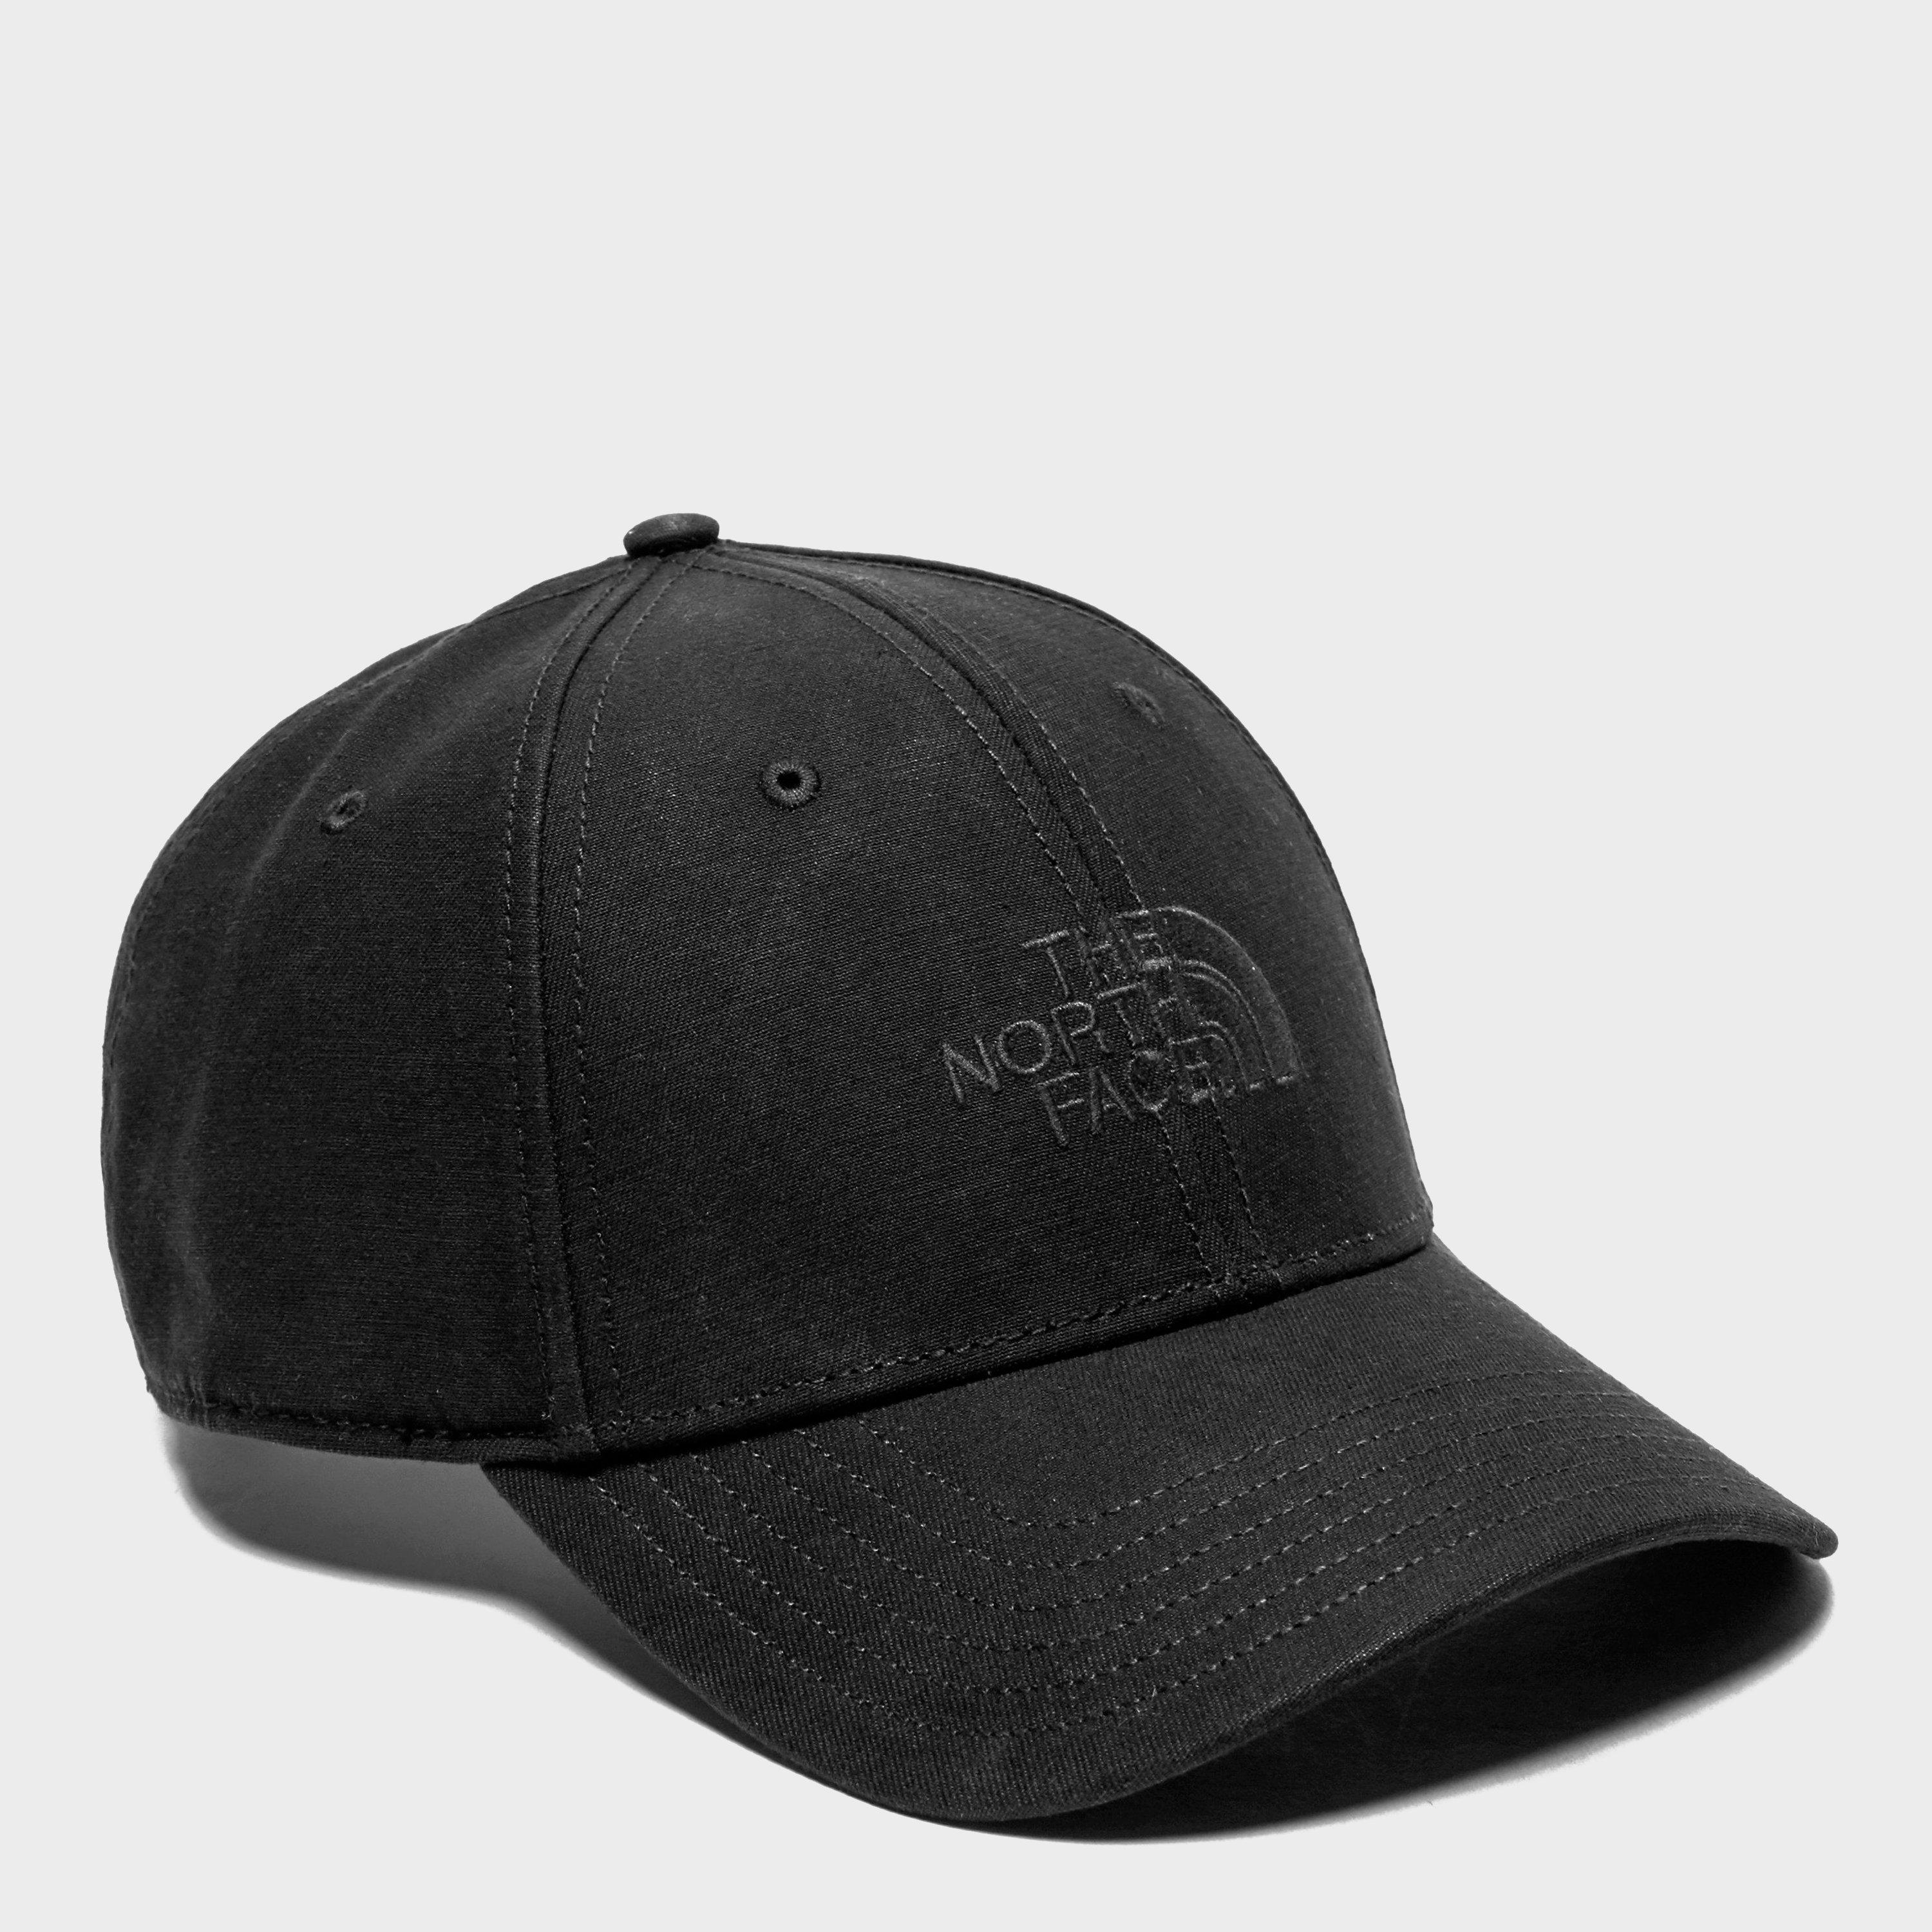 The North Face Classic Hat Black